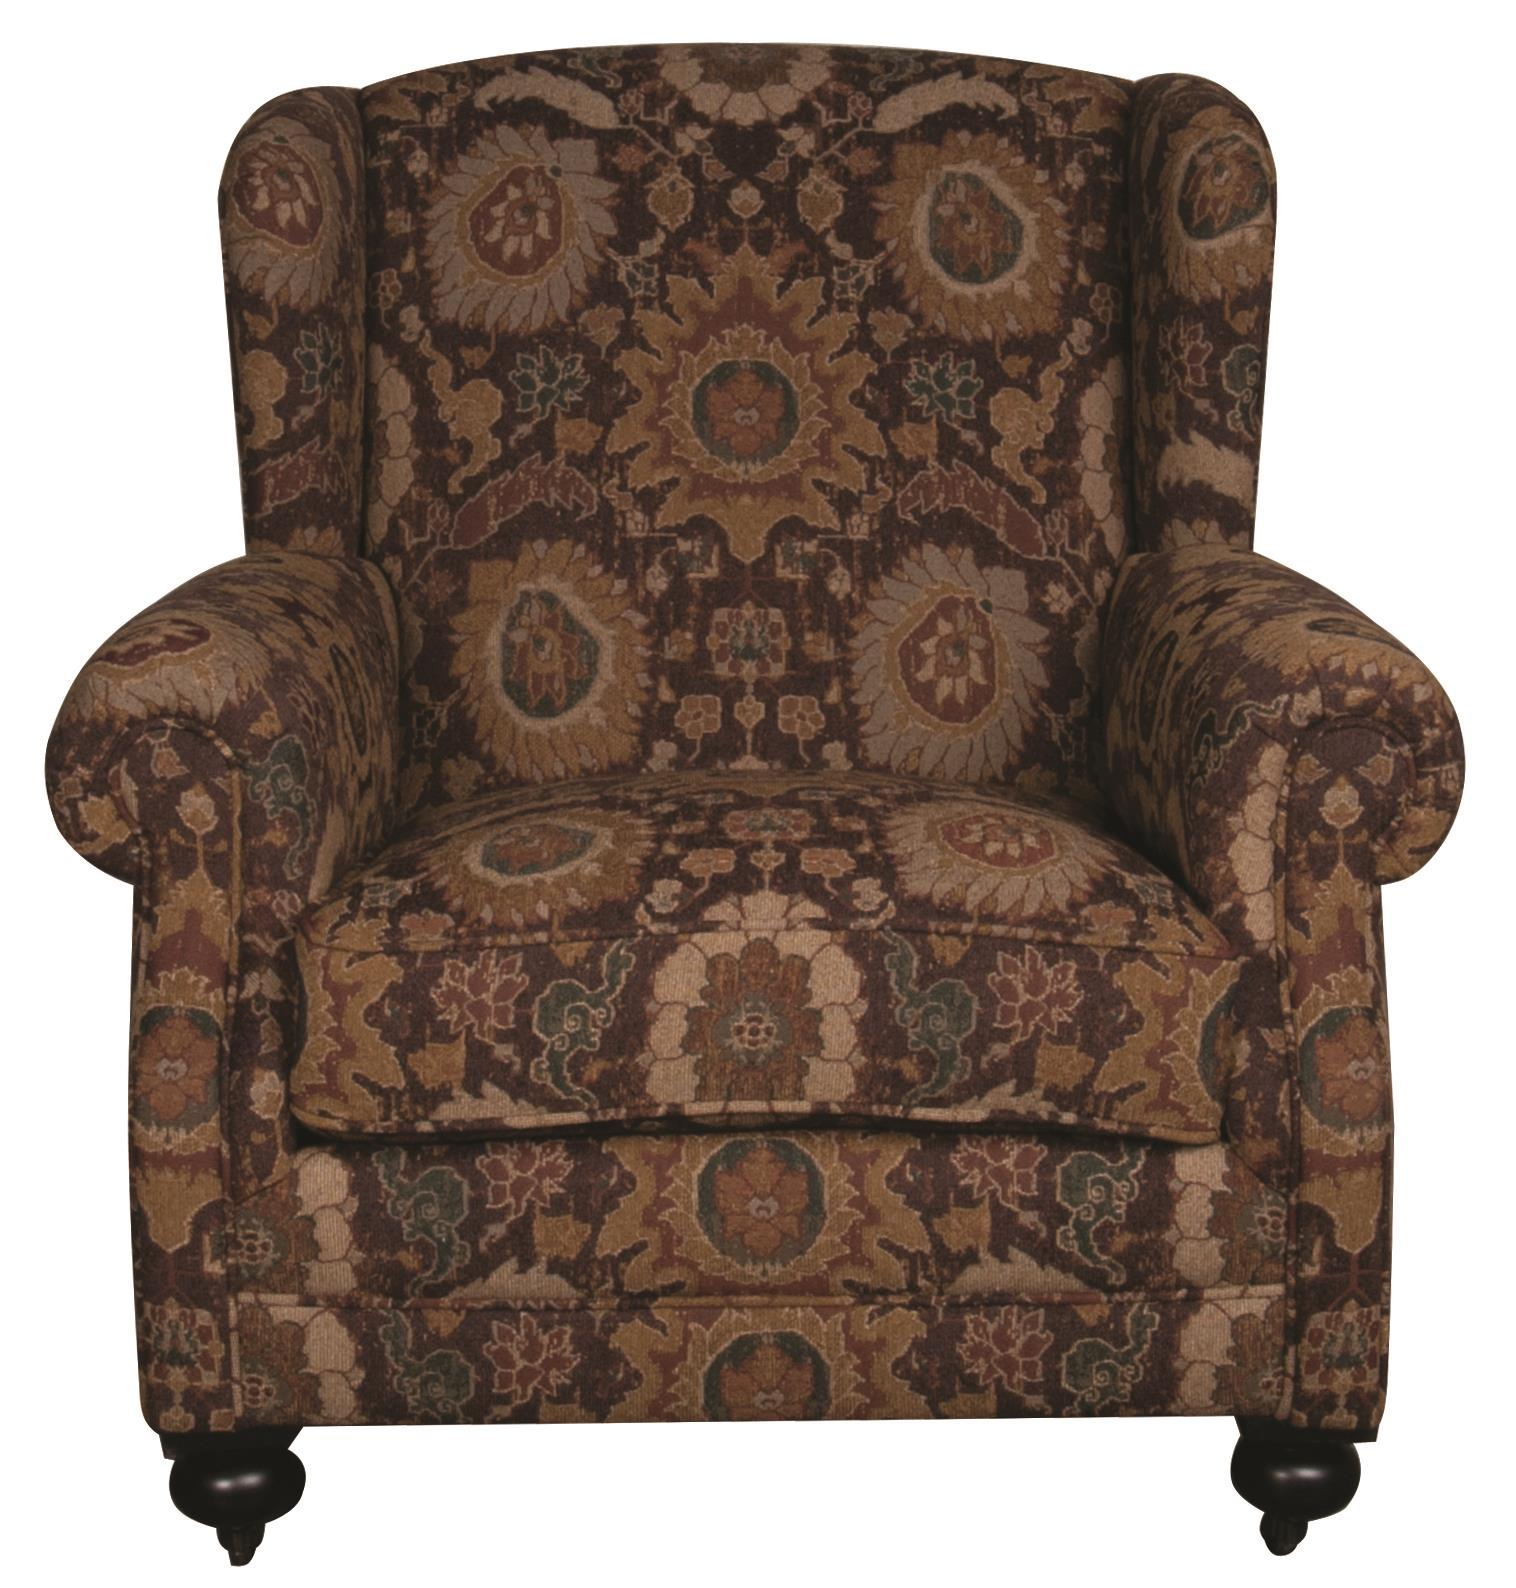 Bernhardt Morris Home Furnishings Anna Wing Chair - Item Number: 549087357